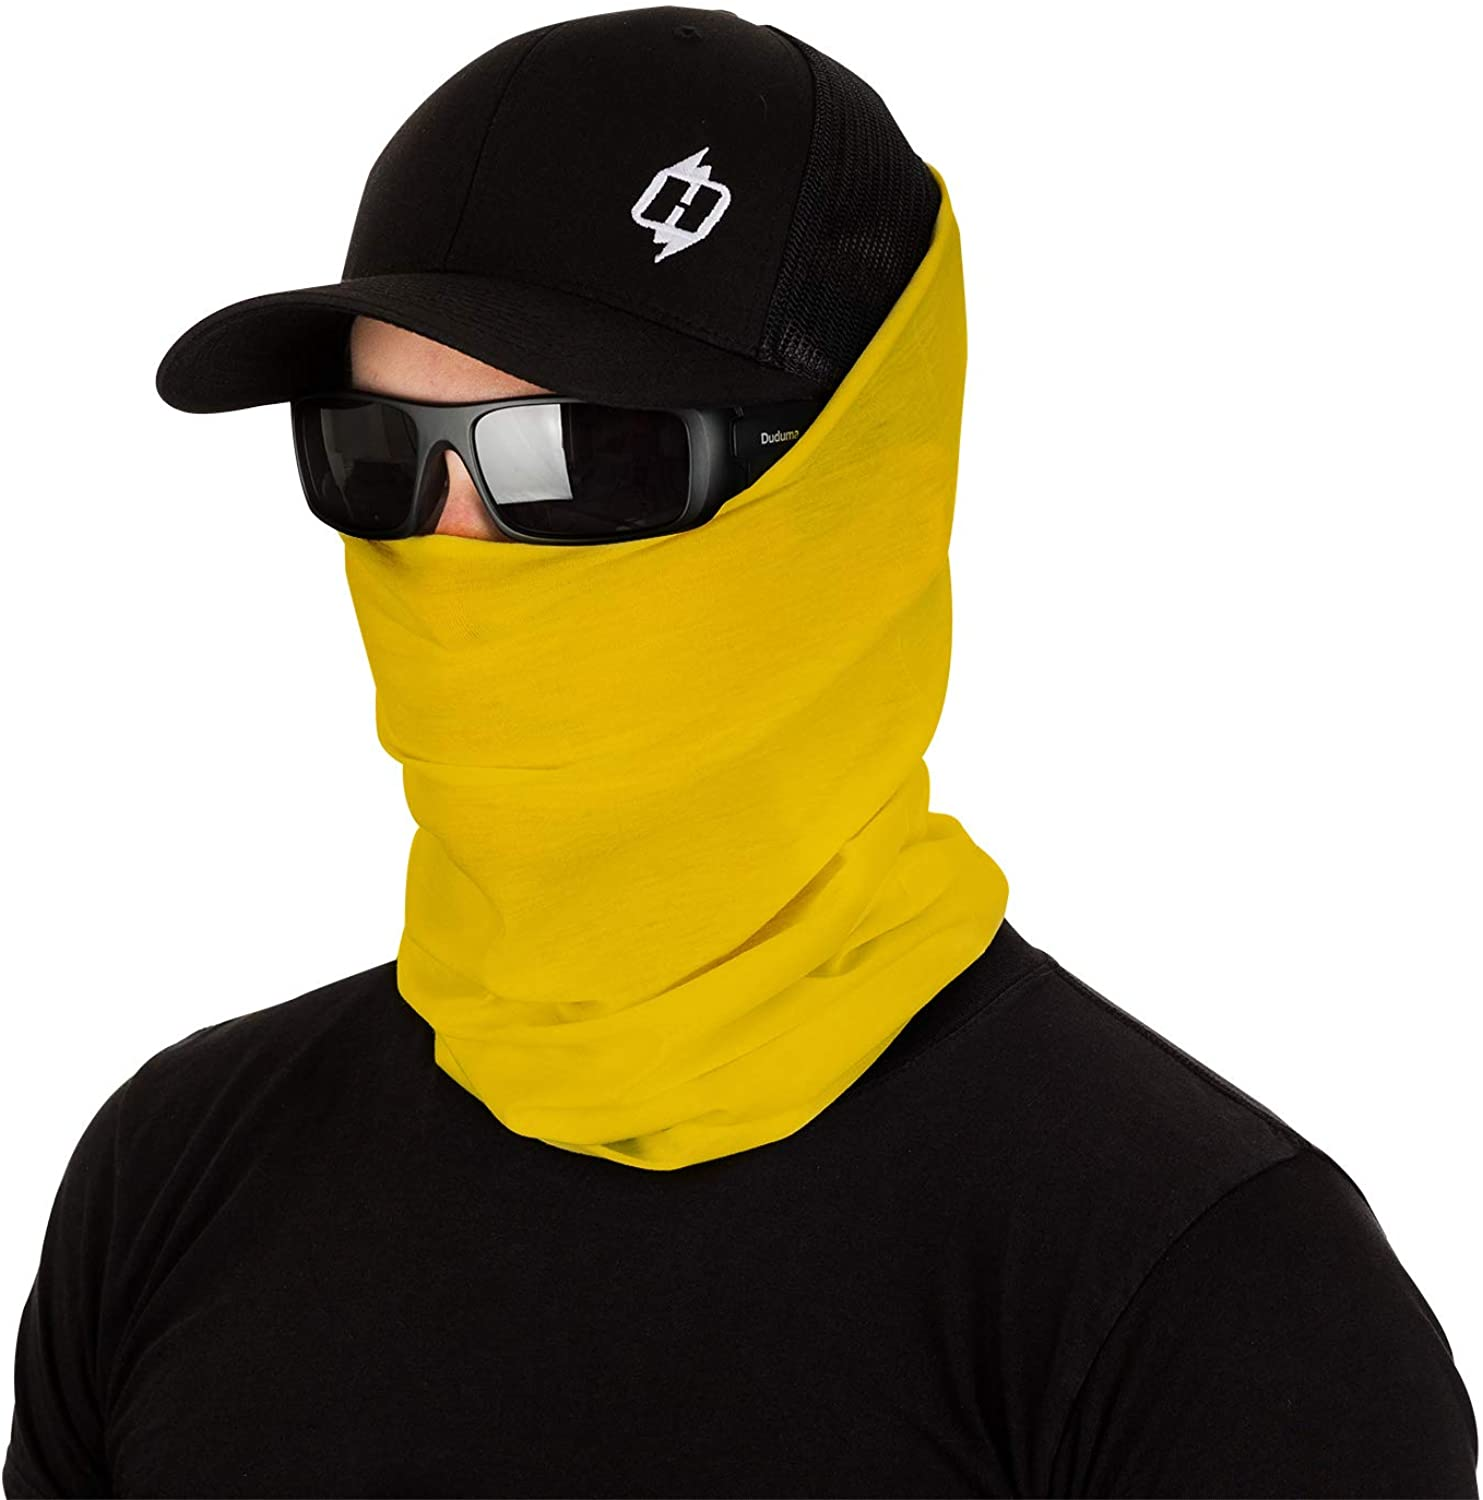 Solid Color Face Mask, Neck Gaiter and Bandana Combo by Hoo-rag